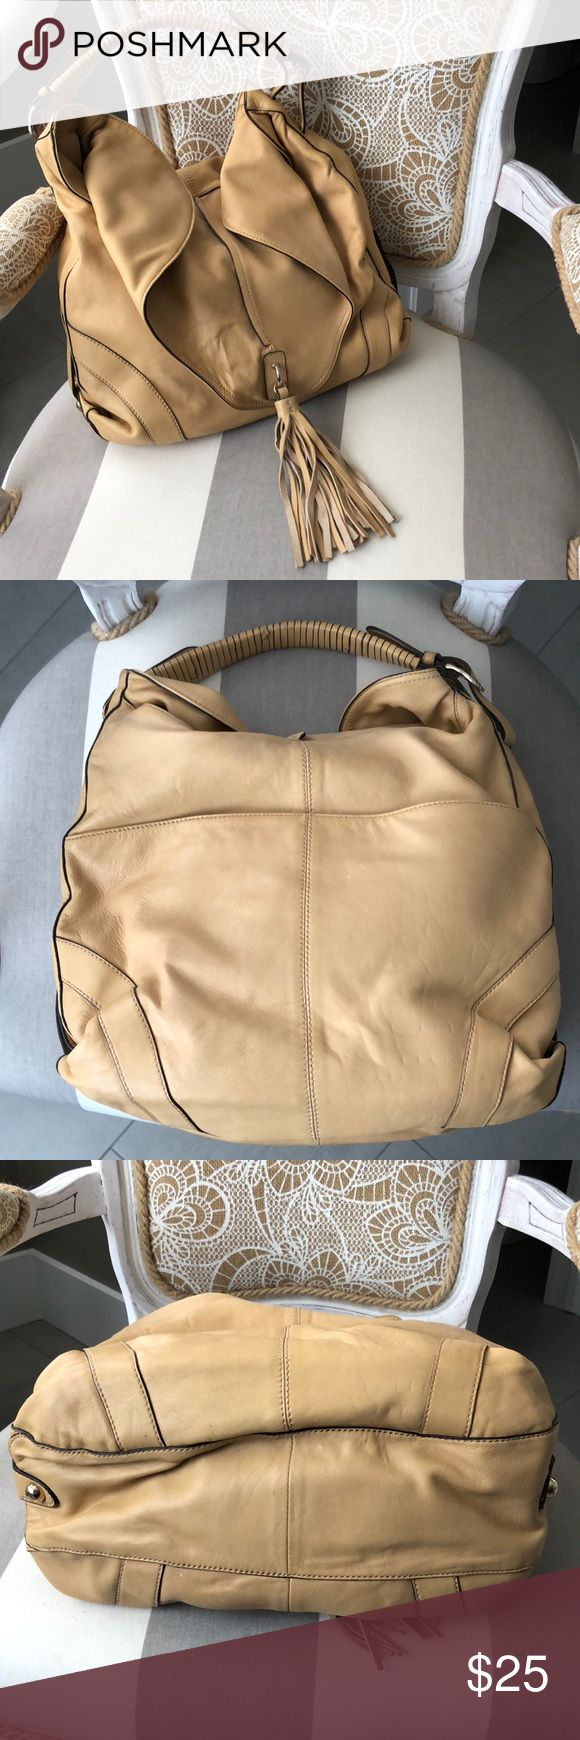 Genuine Leather Carmel Hype Hobo Beautiful genuine butter soft leather Carmel colored hobo shoulder bag. Tons of room with one side pocket that clasps, interior pockets for credit cards & cell phone and a zipper pocket. Interior is in excellent condition. Some light wear on the handle (see picture). No other marks or wear spots. Overall in very good condition. Hype Bags Hobos